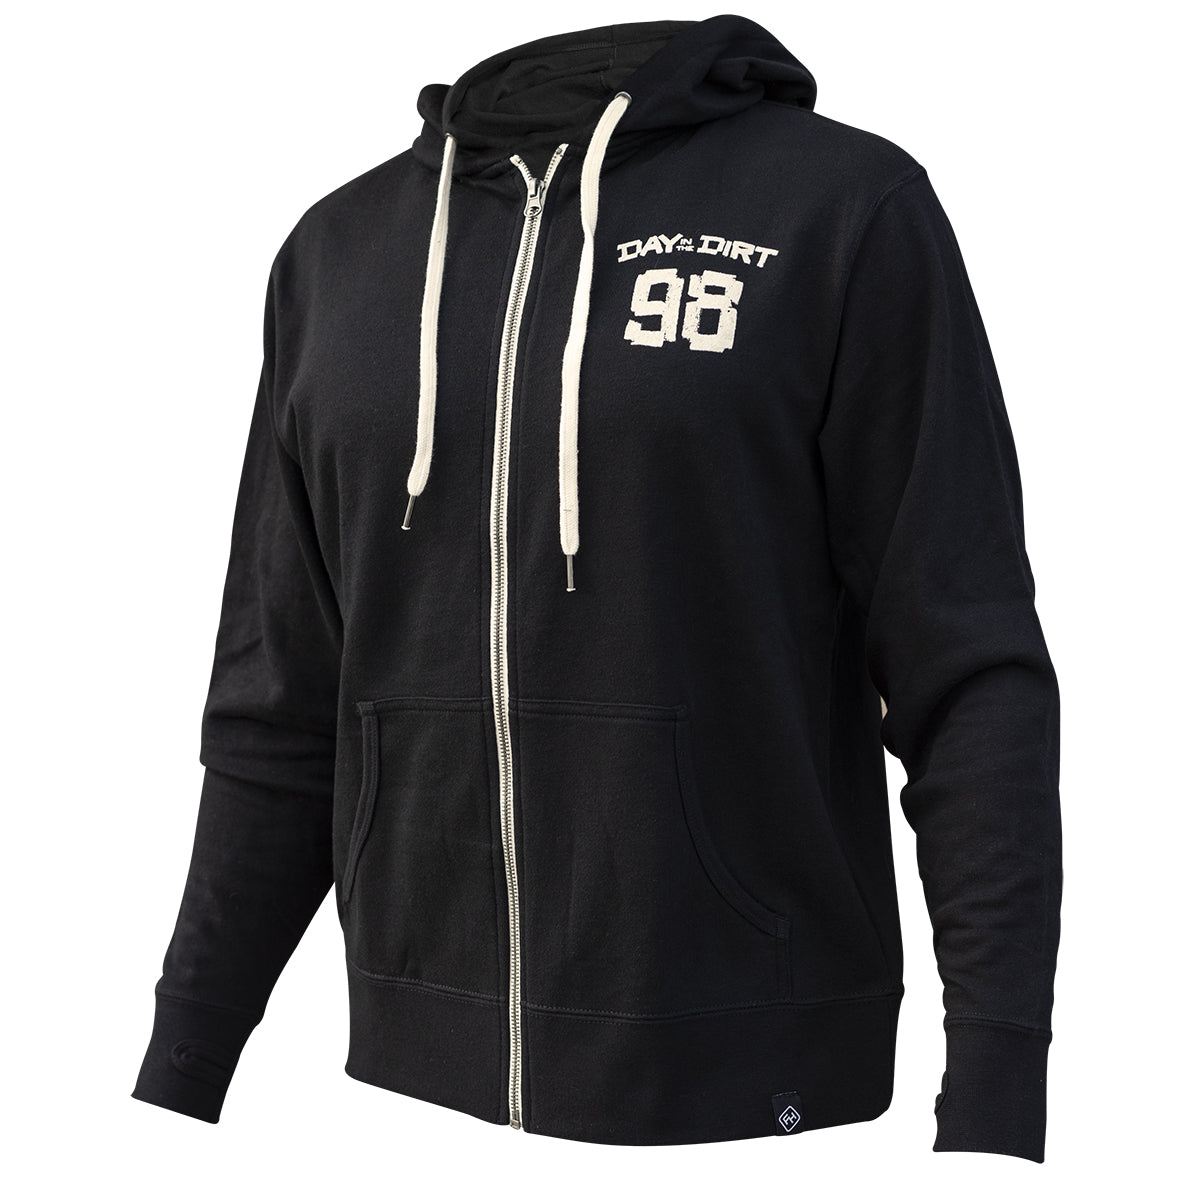 Fasthouse - Day in the Dirt 98 Zip Up Hoodie - Black